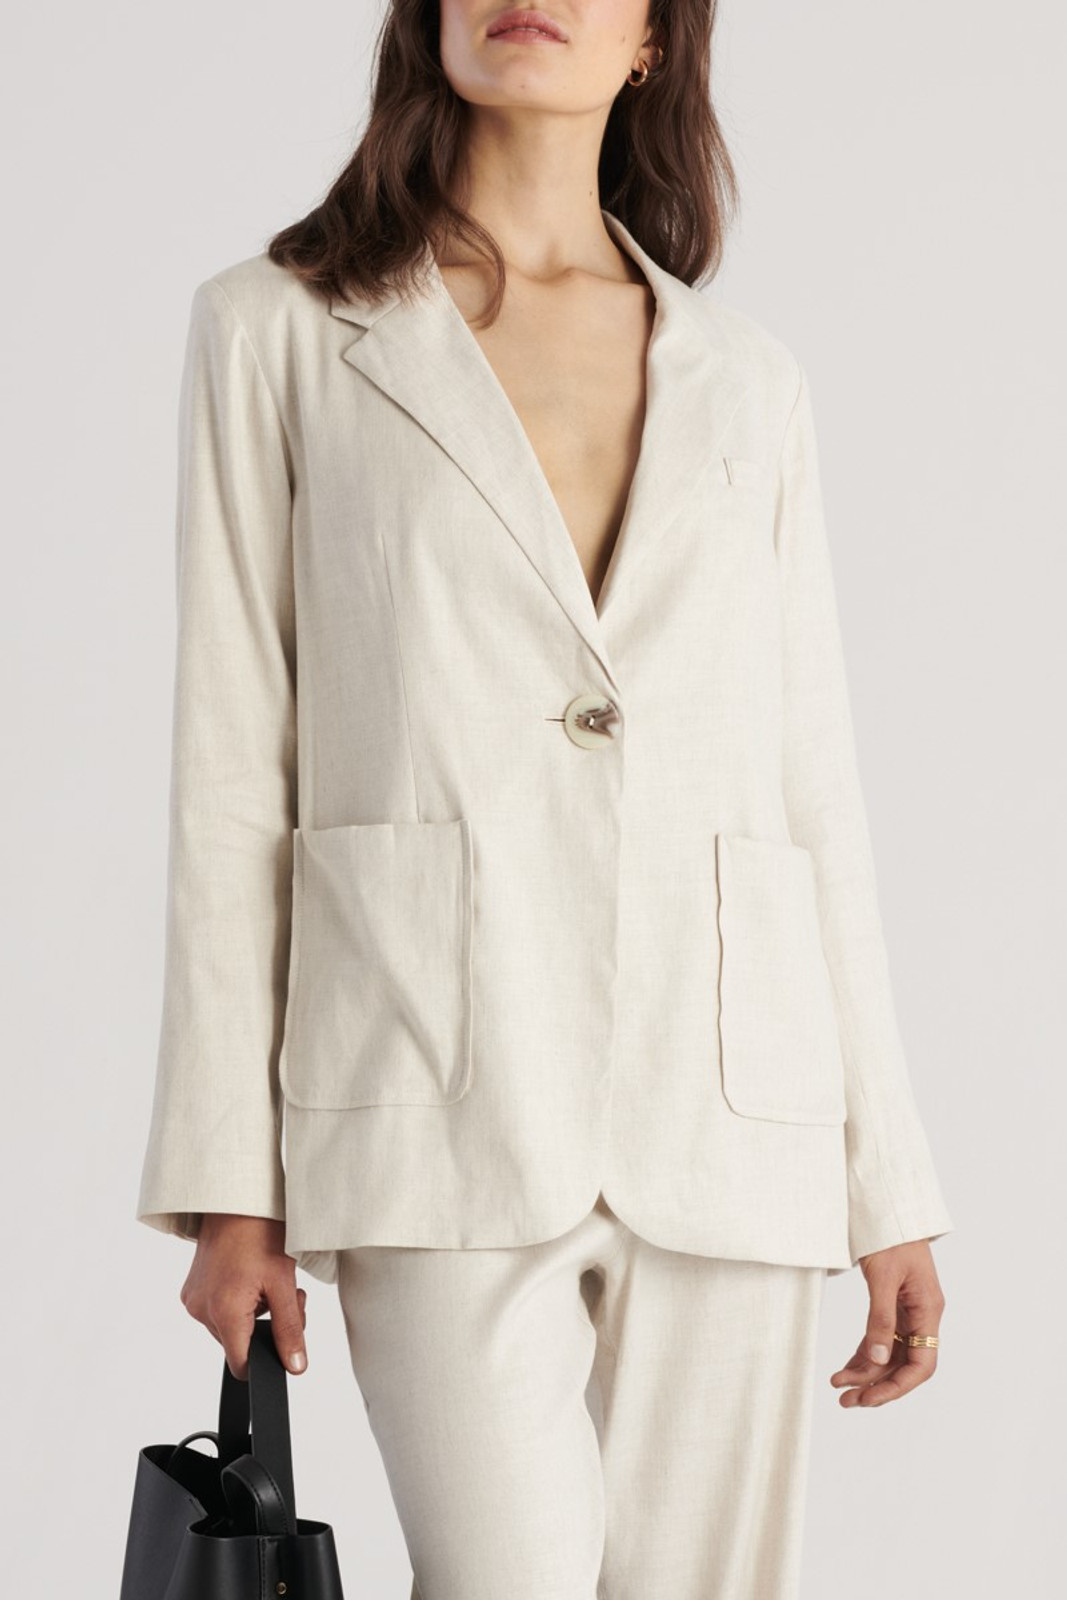 Elka Collective WOMENS Neutrals Cate Jacket 7